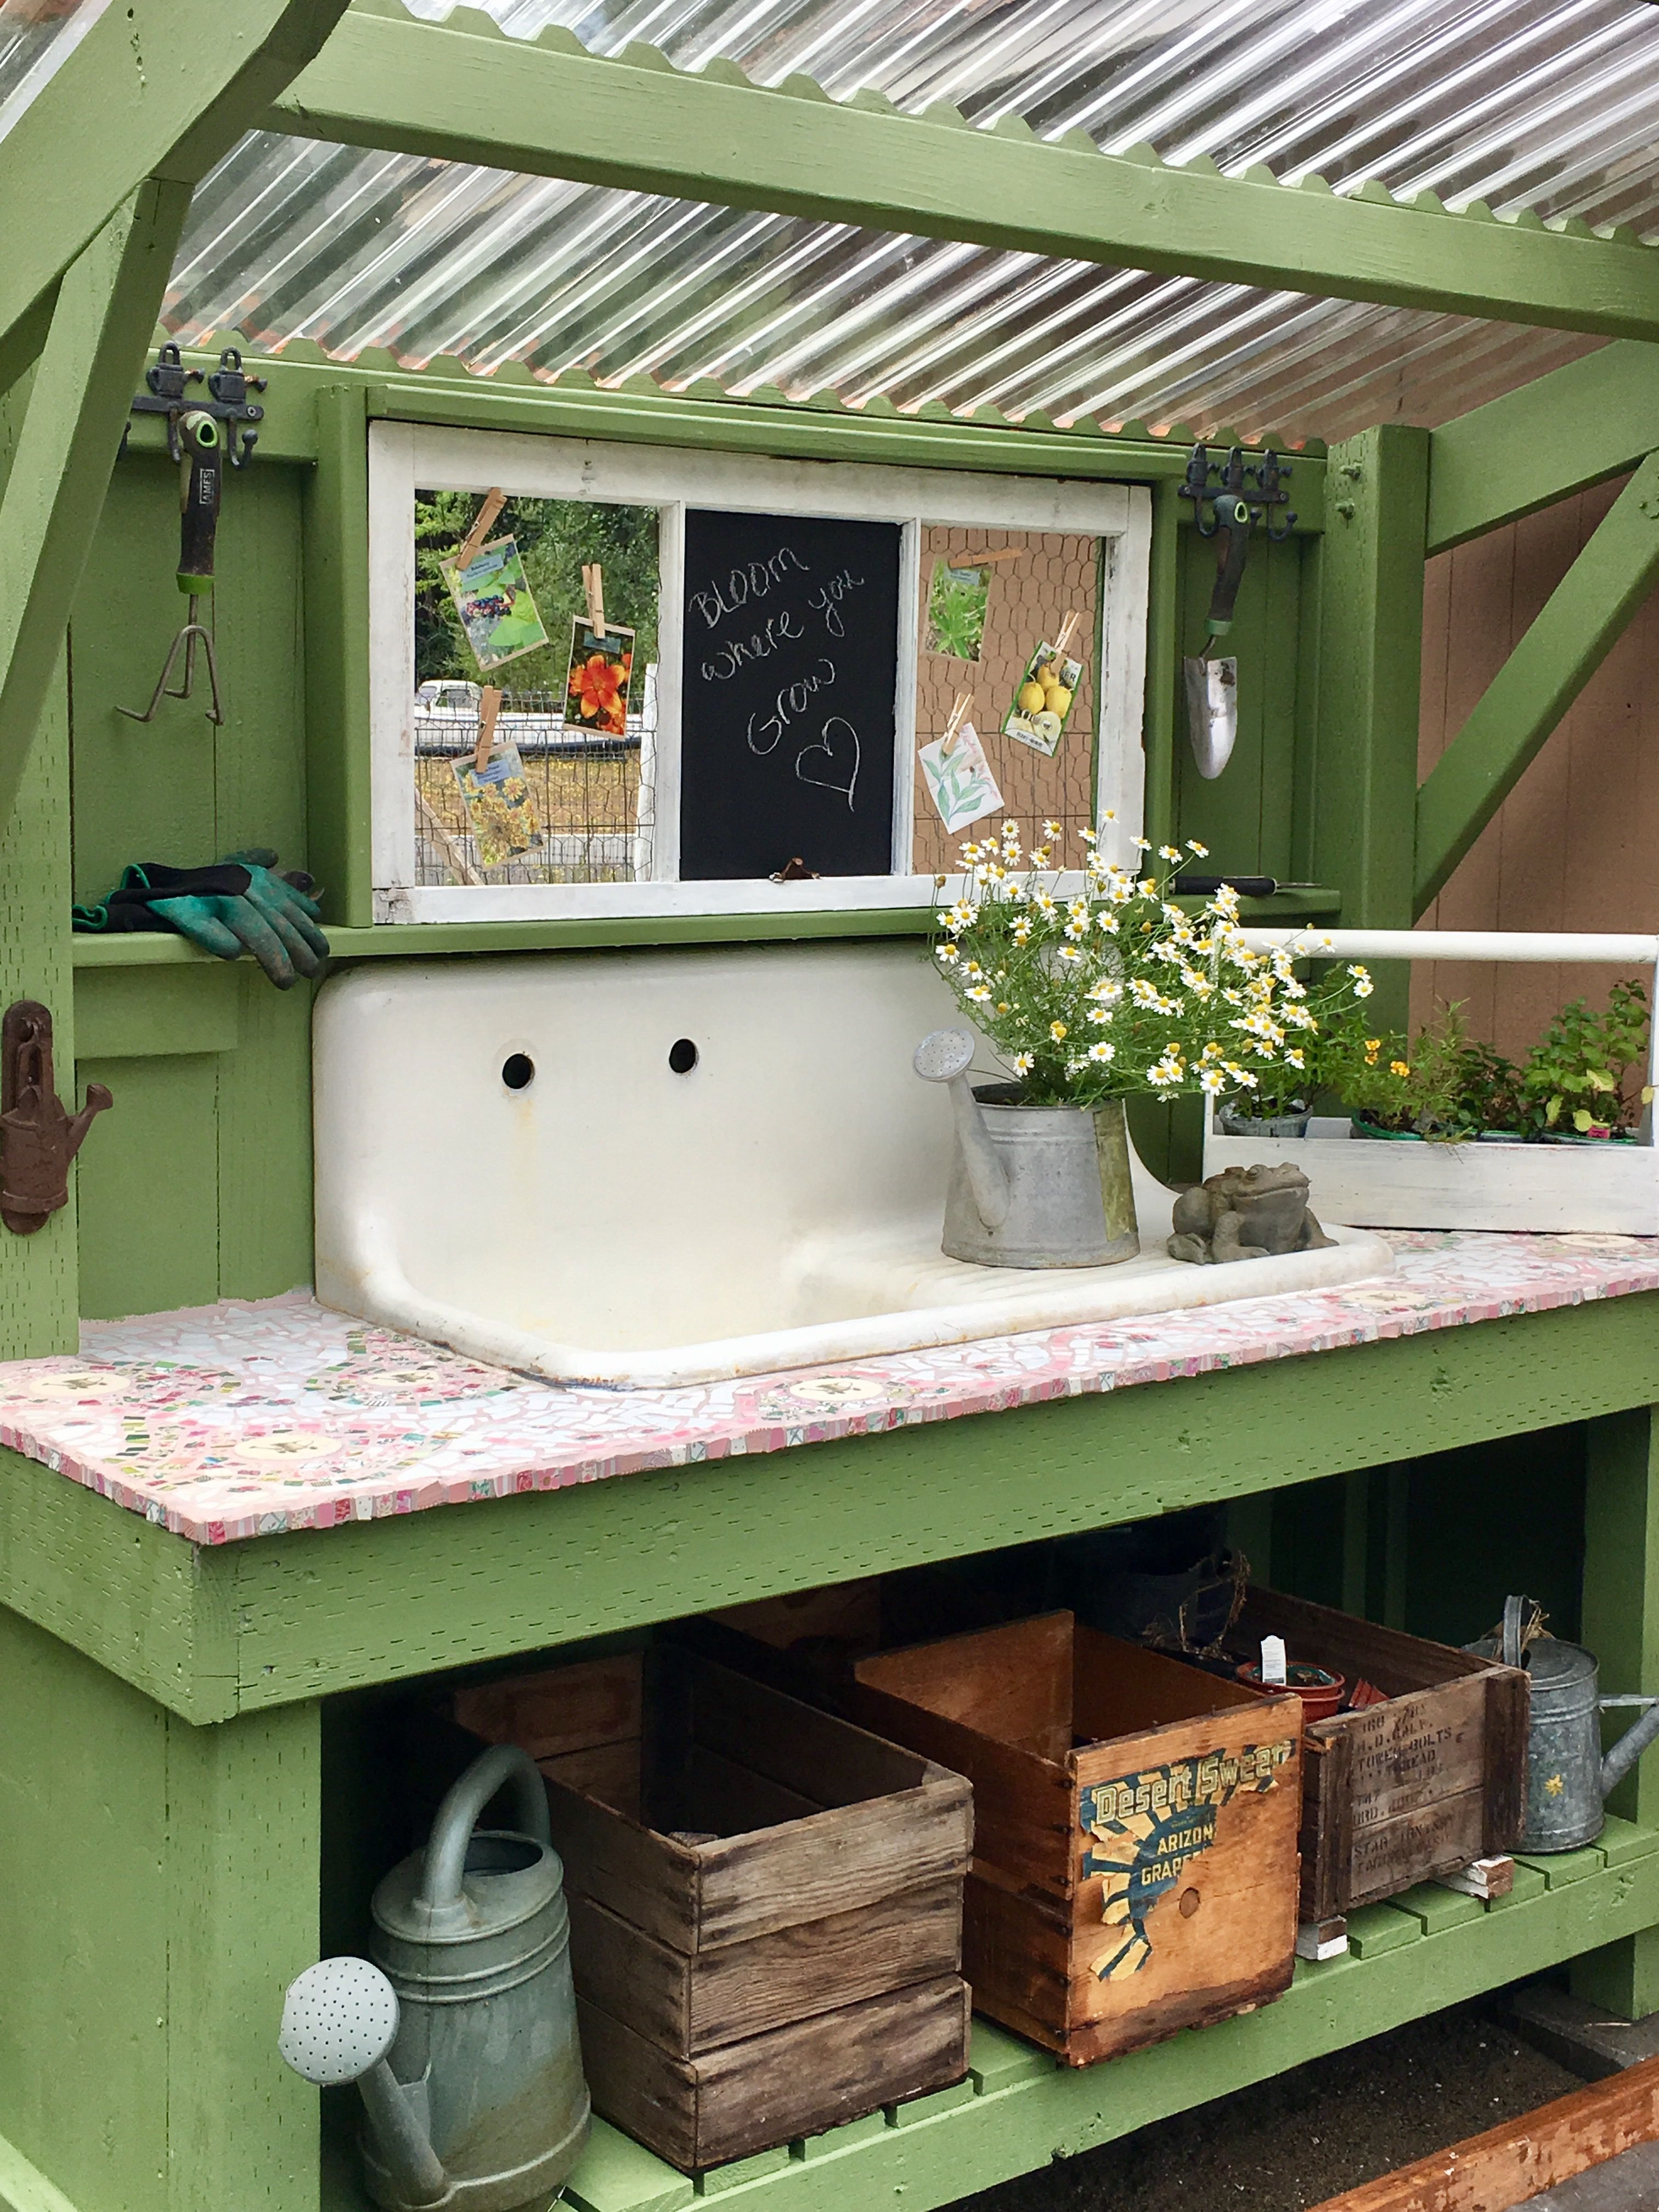 Pin By Sarah Muller On Potting Benches Garden Shed Interiors Outdoor Potting Bench Garden Sink